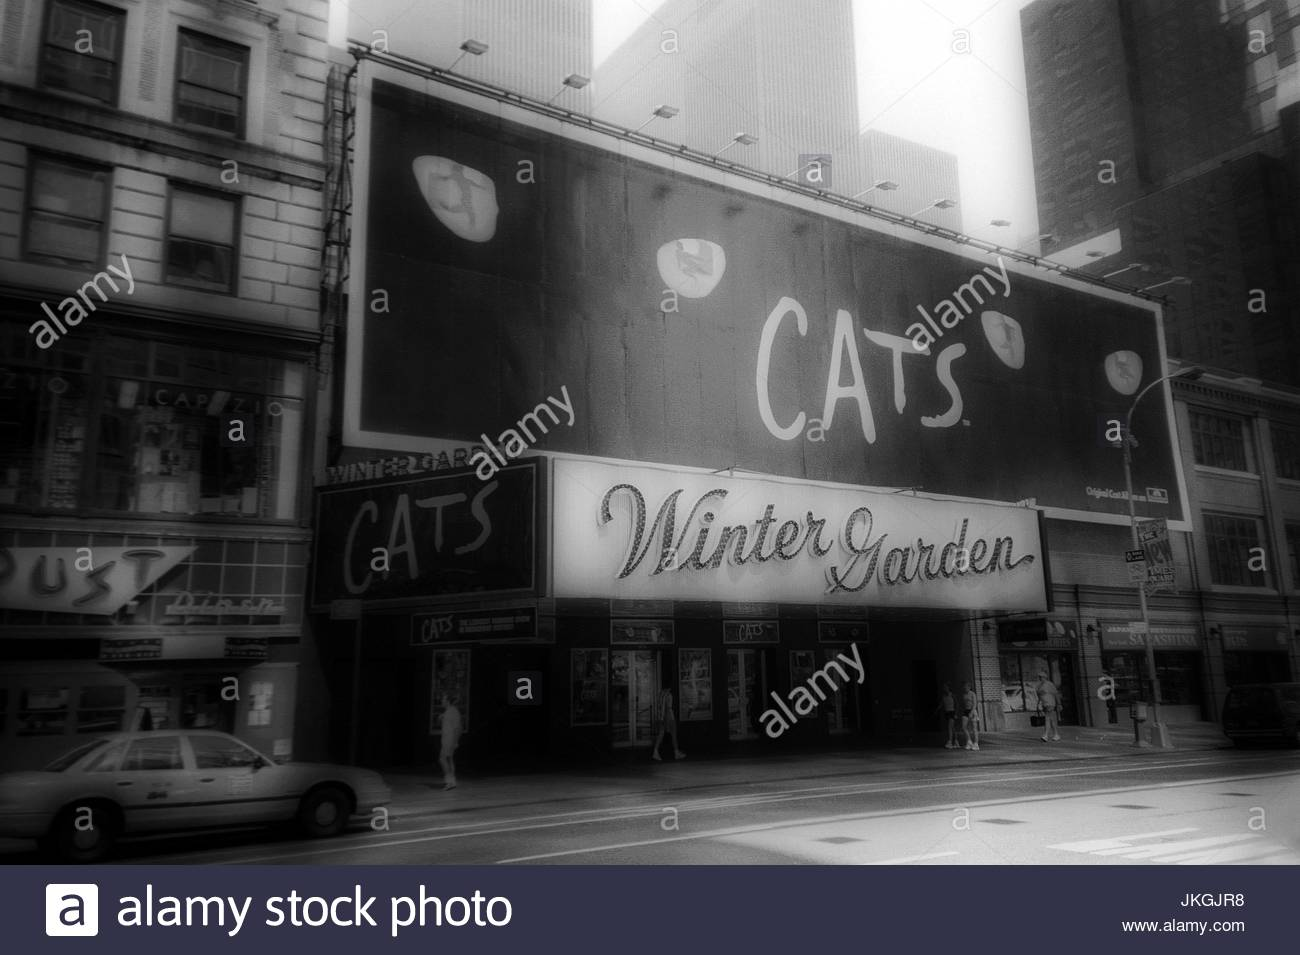 cats marquee